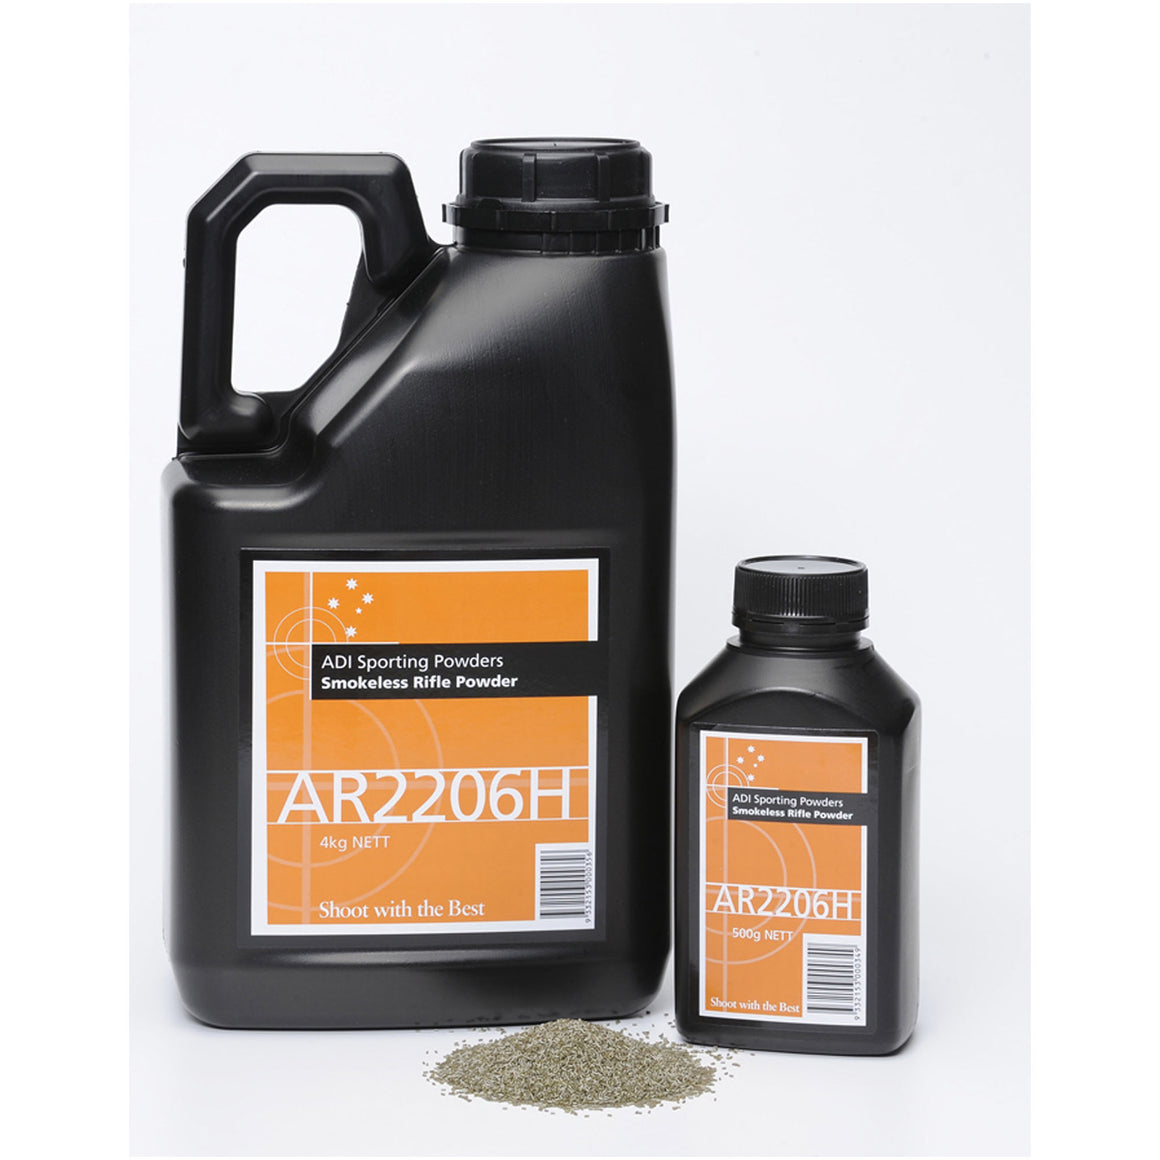 ADI AR 2206H Smokeless Rifle Powder